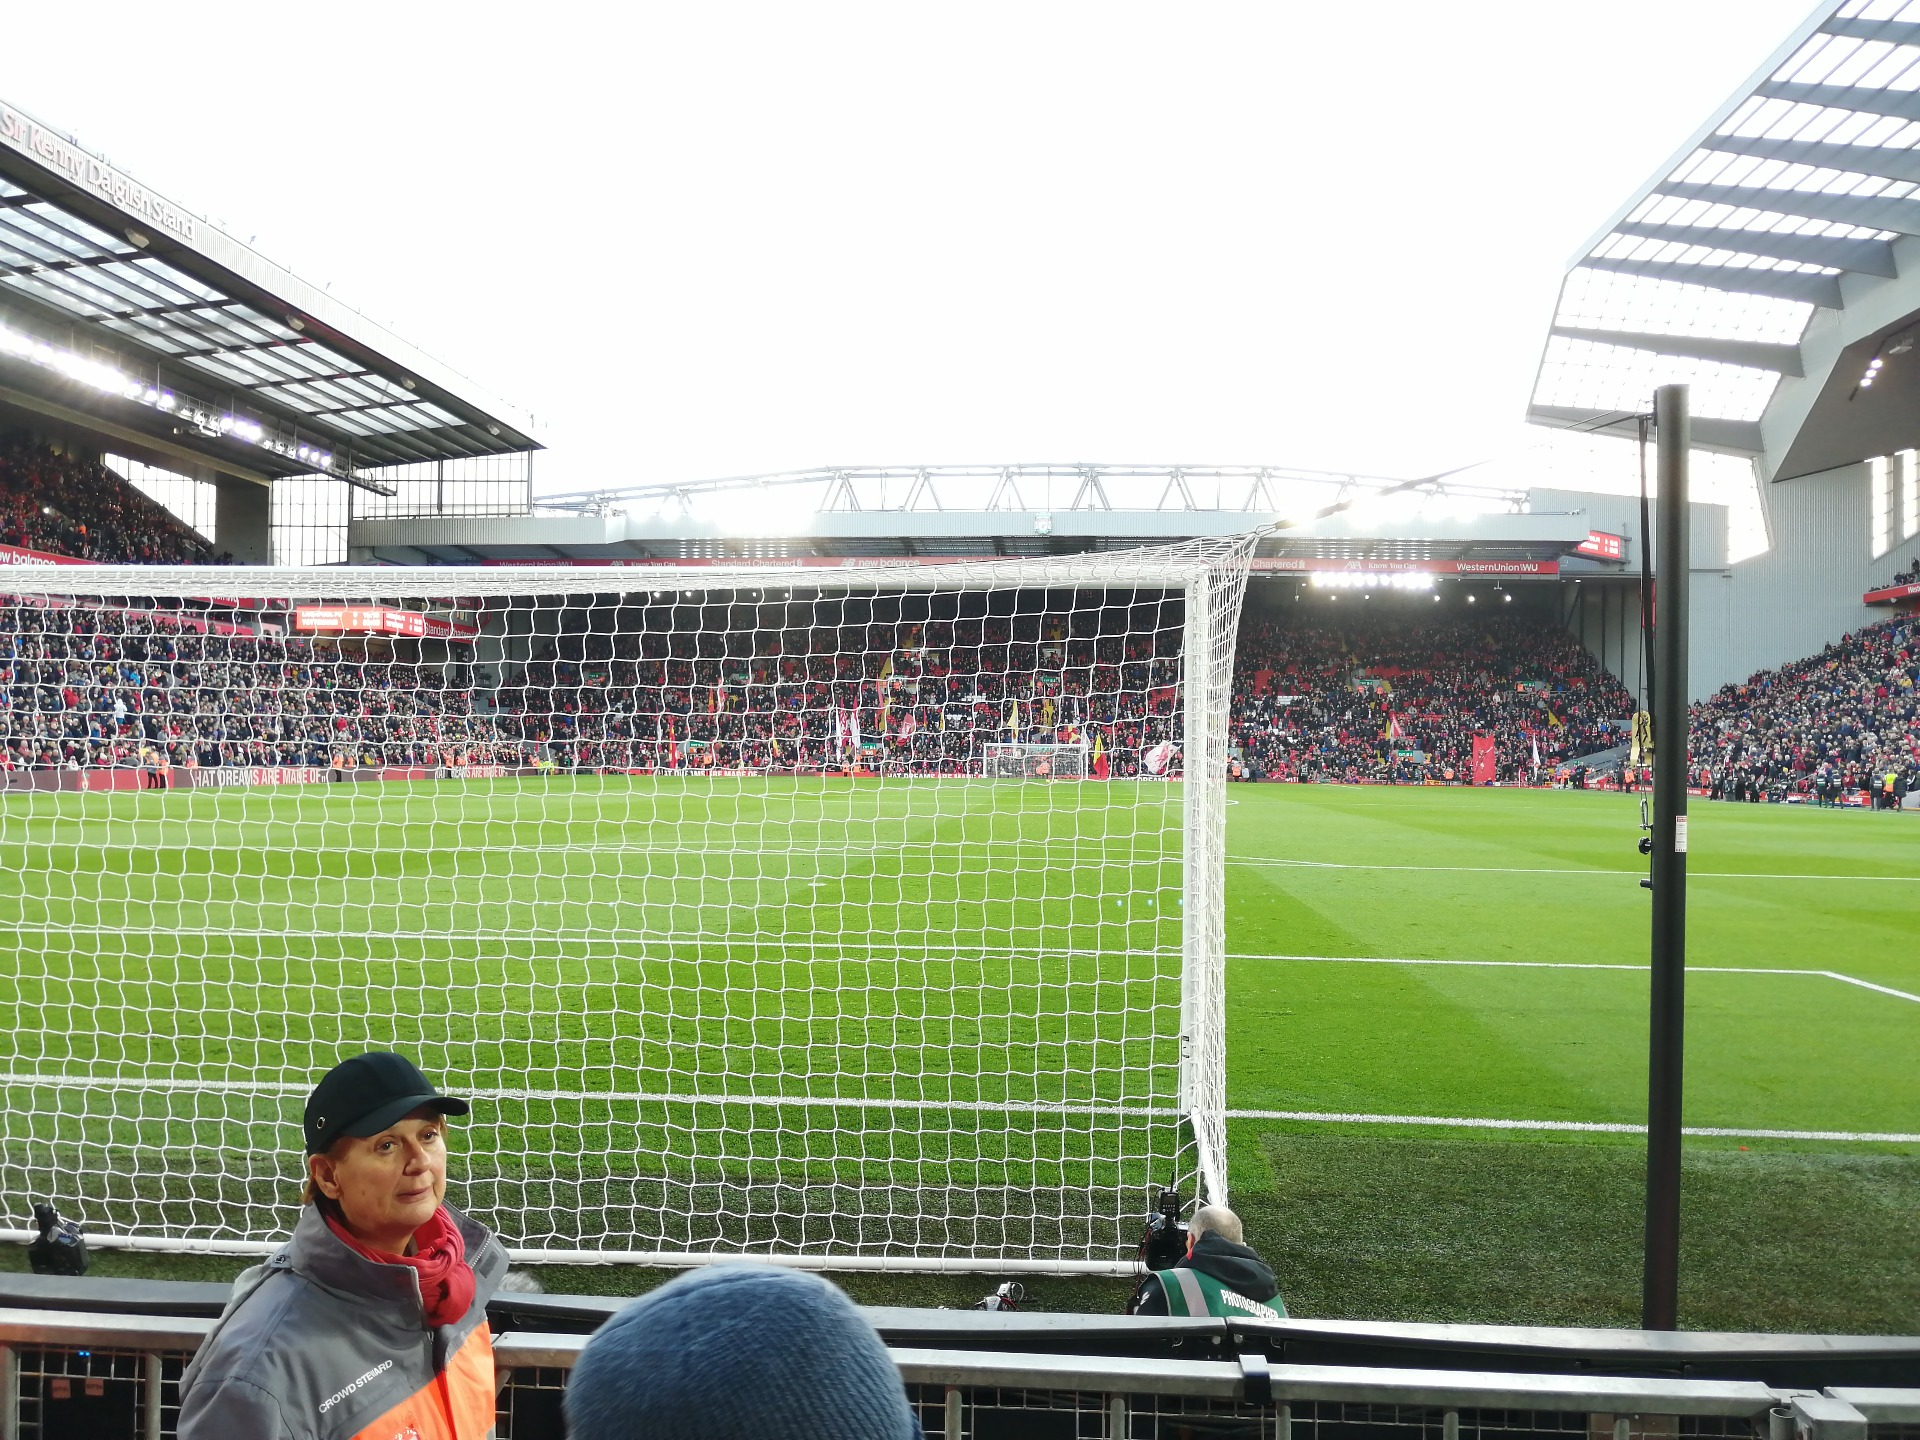 Anfield Section 124 Row 3 Seat 100